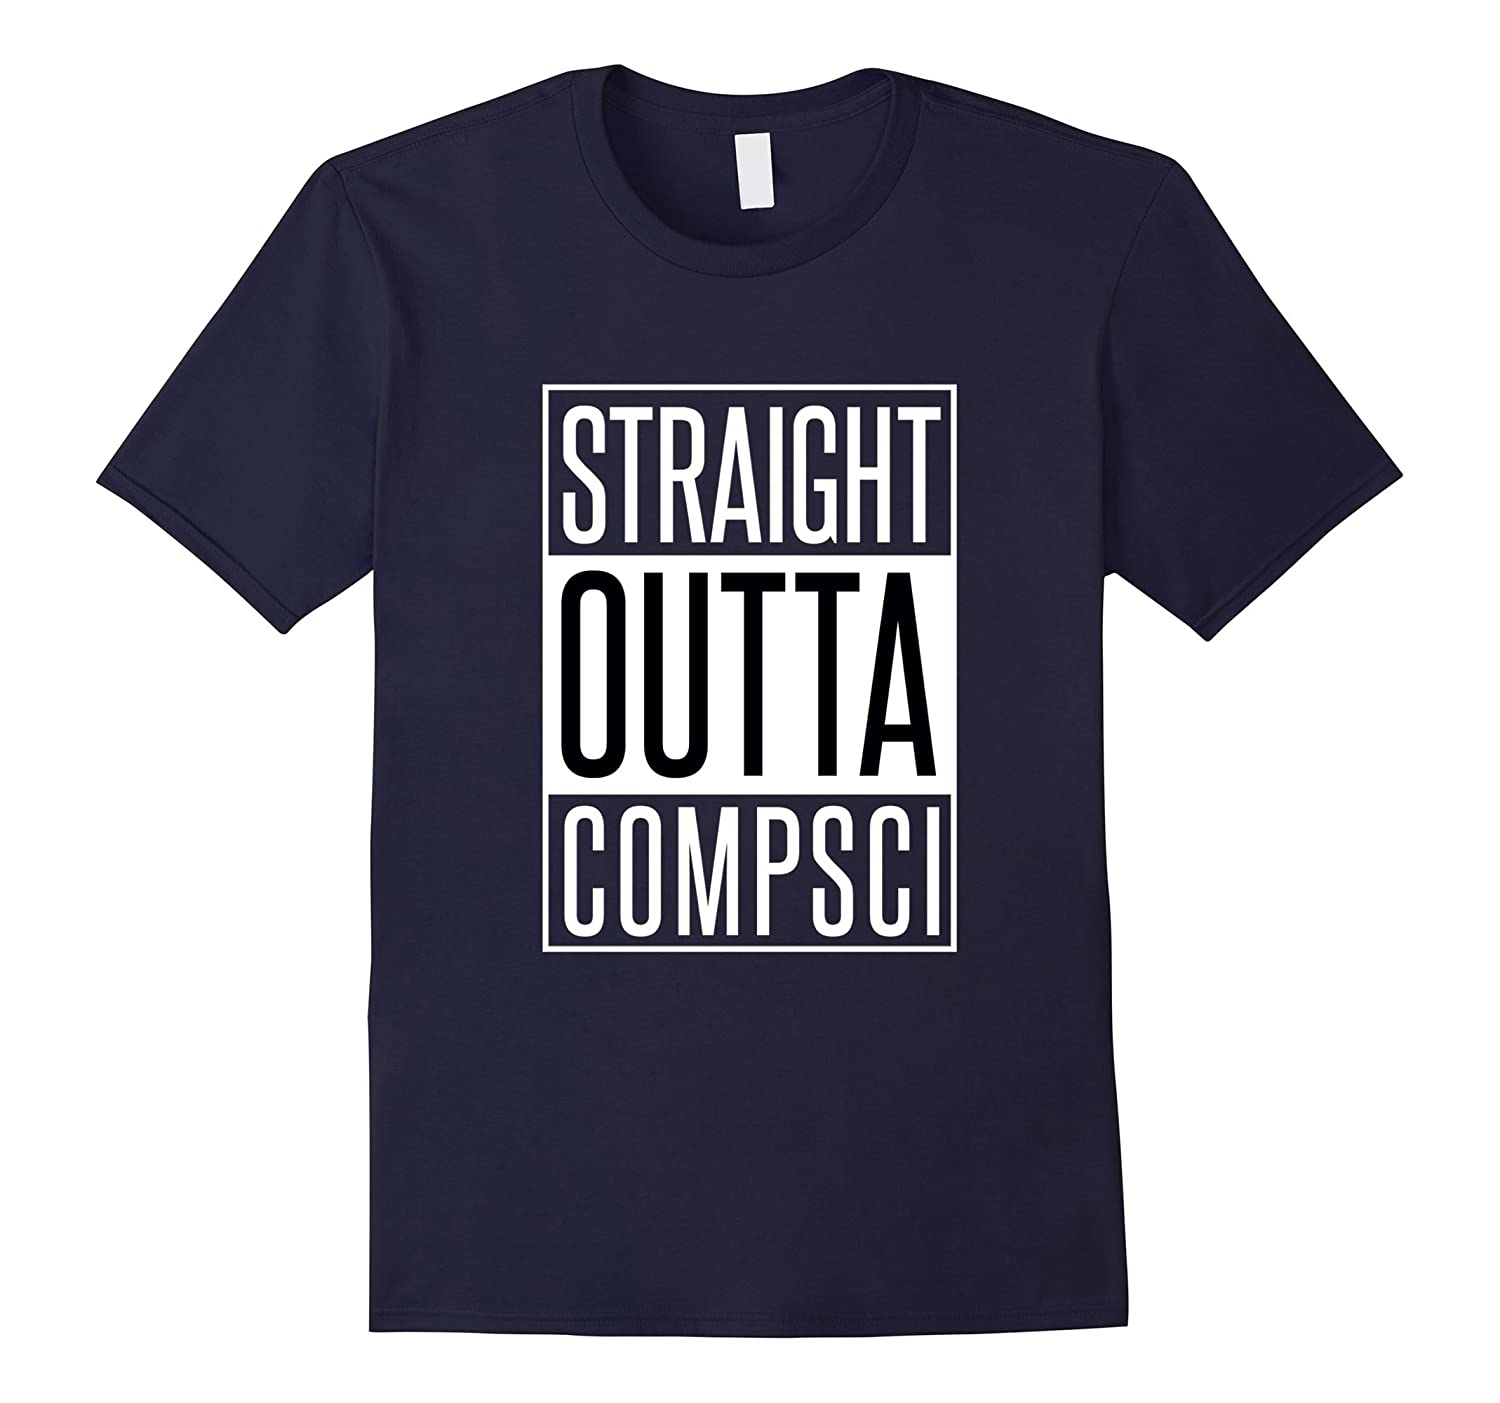 Computer Science Tshirt - Straight Outta Comp Sci Parody-Vaci